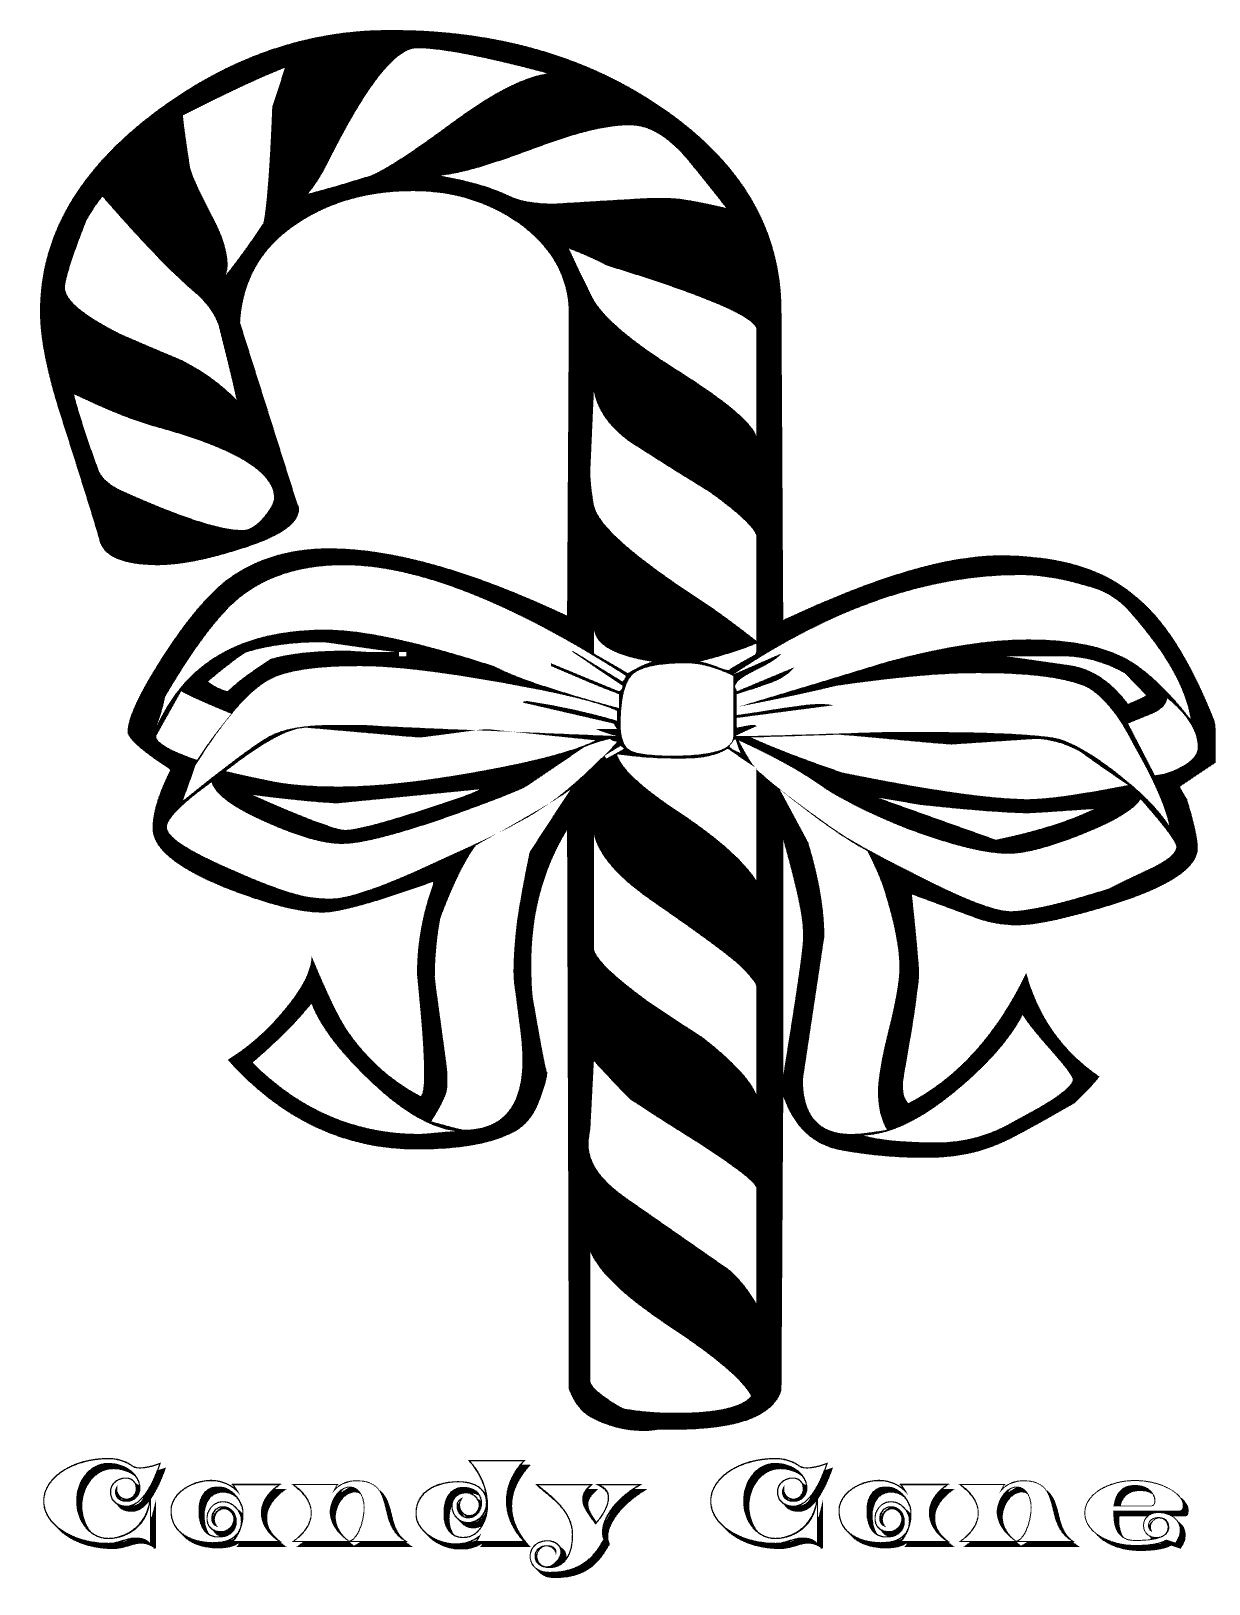 Free Printable Candy Cane Coloring Pages For Kids Ideas For The